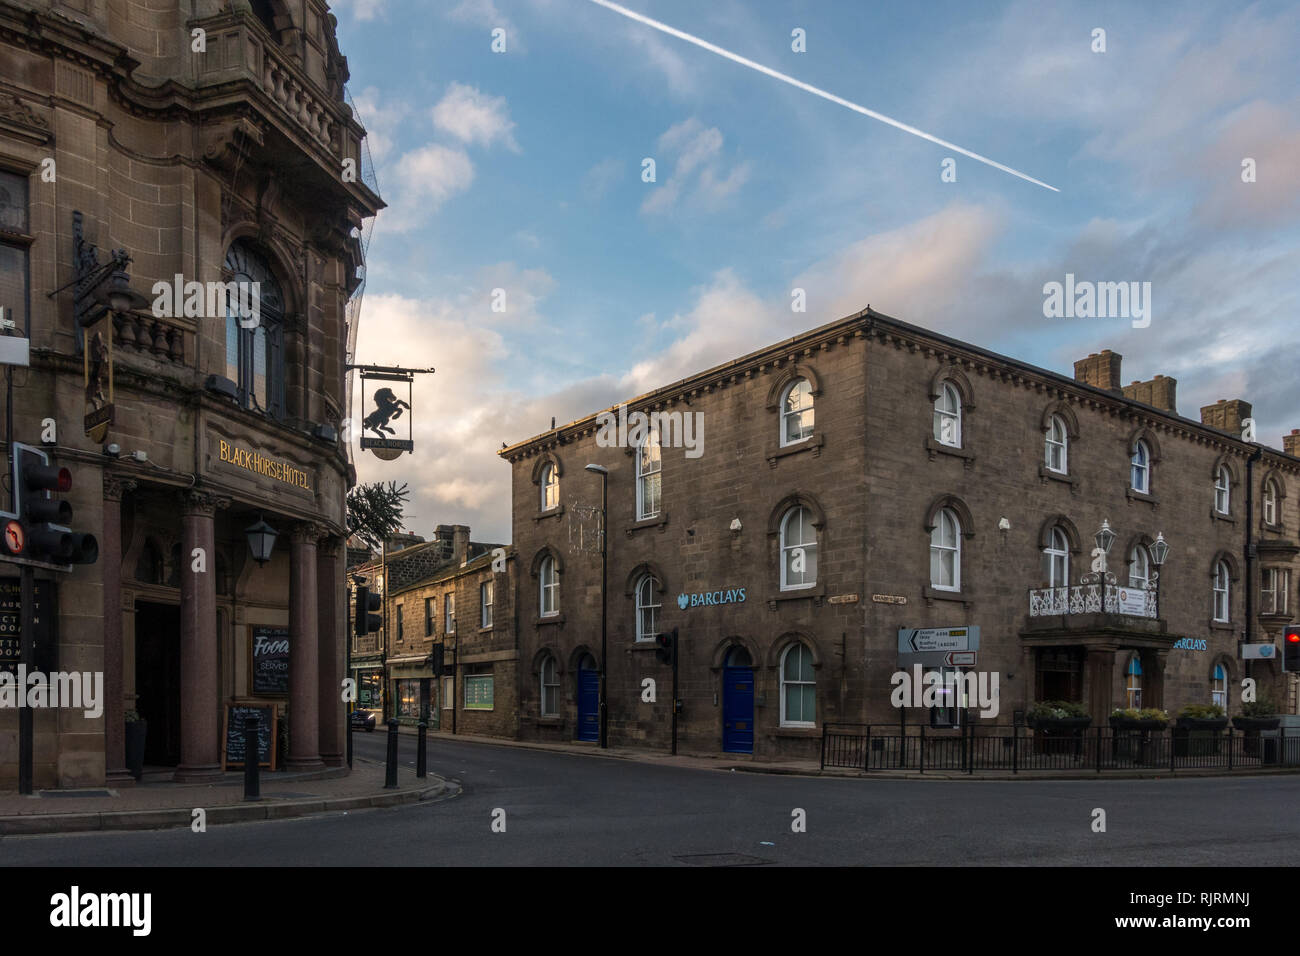 Crossroads in the centre of Otley market town looking at Barclays bank and the Black Horse hotel on a beautiful evening, West Yorkshire - Stock Image